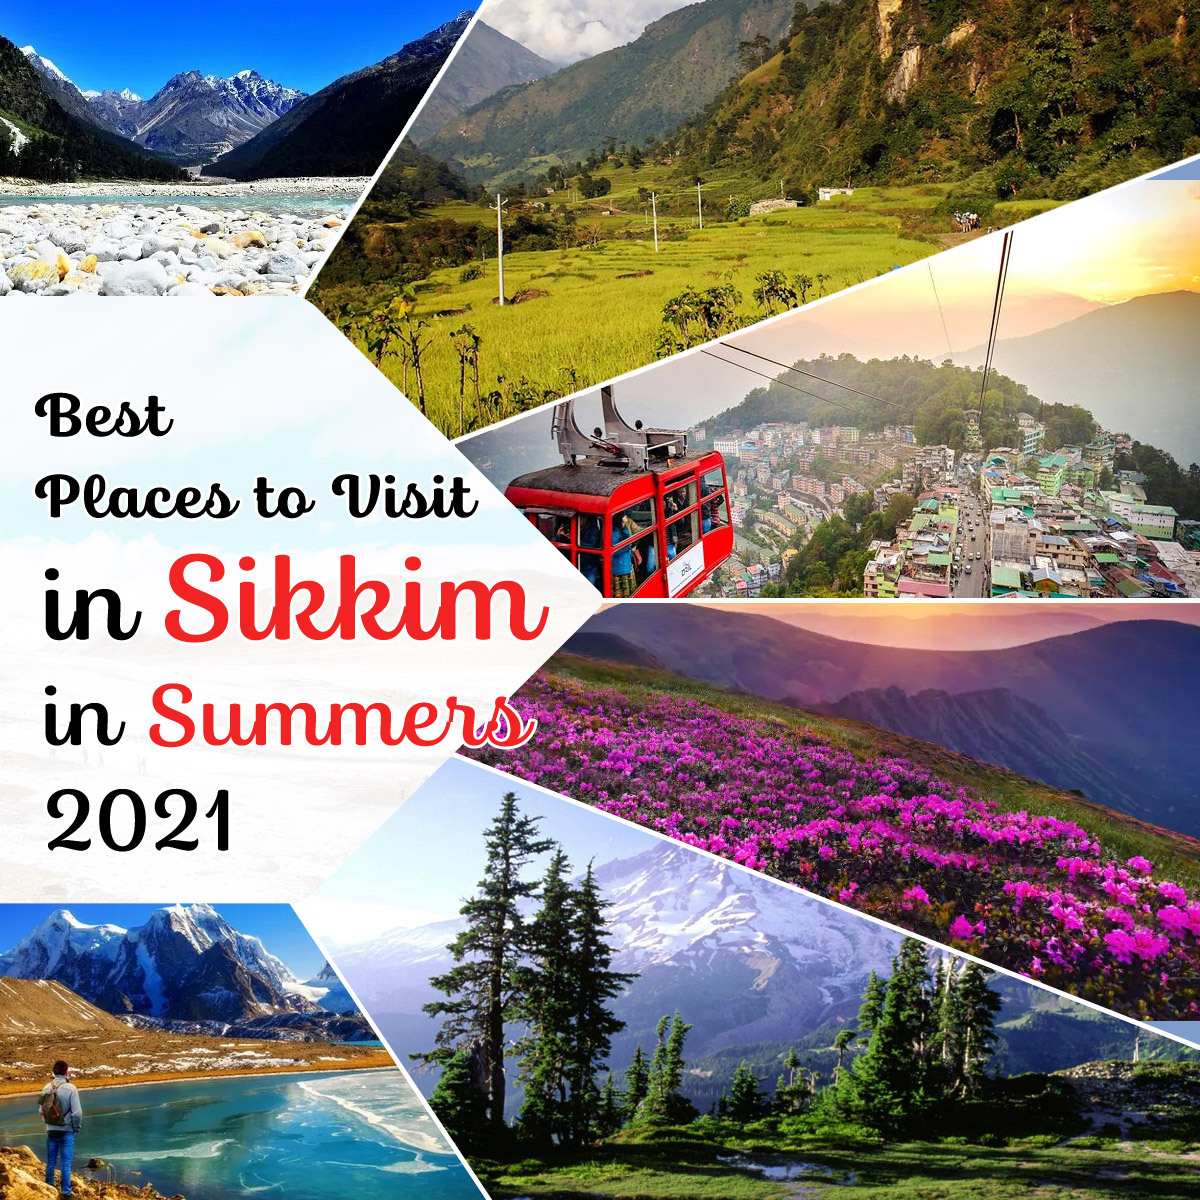 Either a day at the lush green valley or taking a stroll through pristine lakes, Sikkim in summers is flawless.  Know more->   #sikkimtourism #sikkimtrip #India #travel2021 #Places #placestovisit #Sikkimplaces #places_wow #placestogo #PlacesofIndia #travel